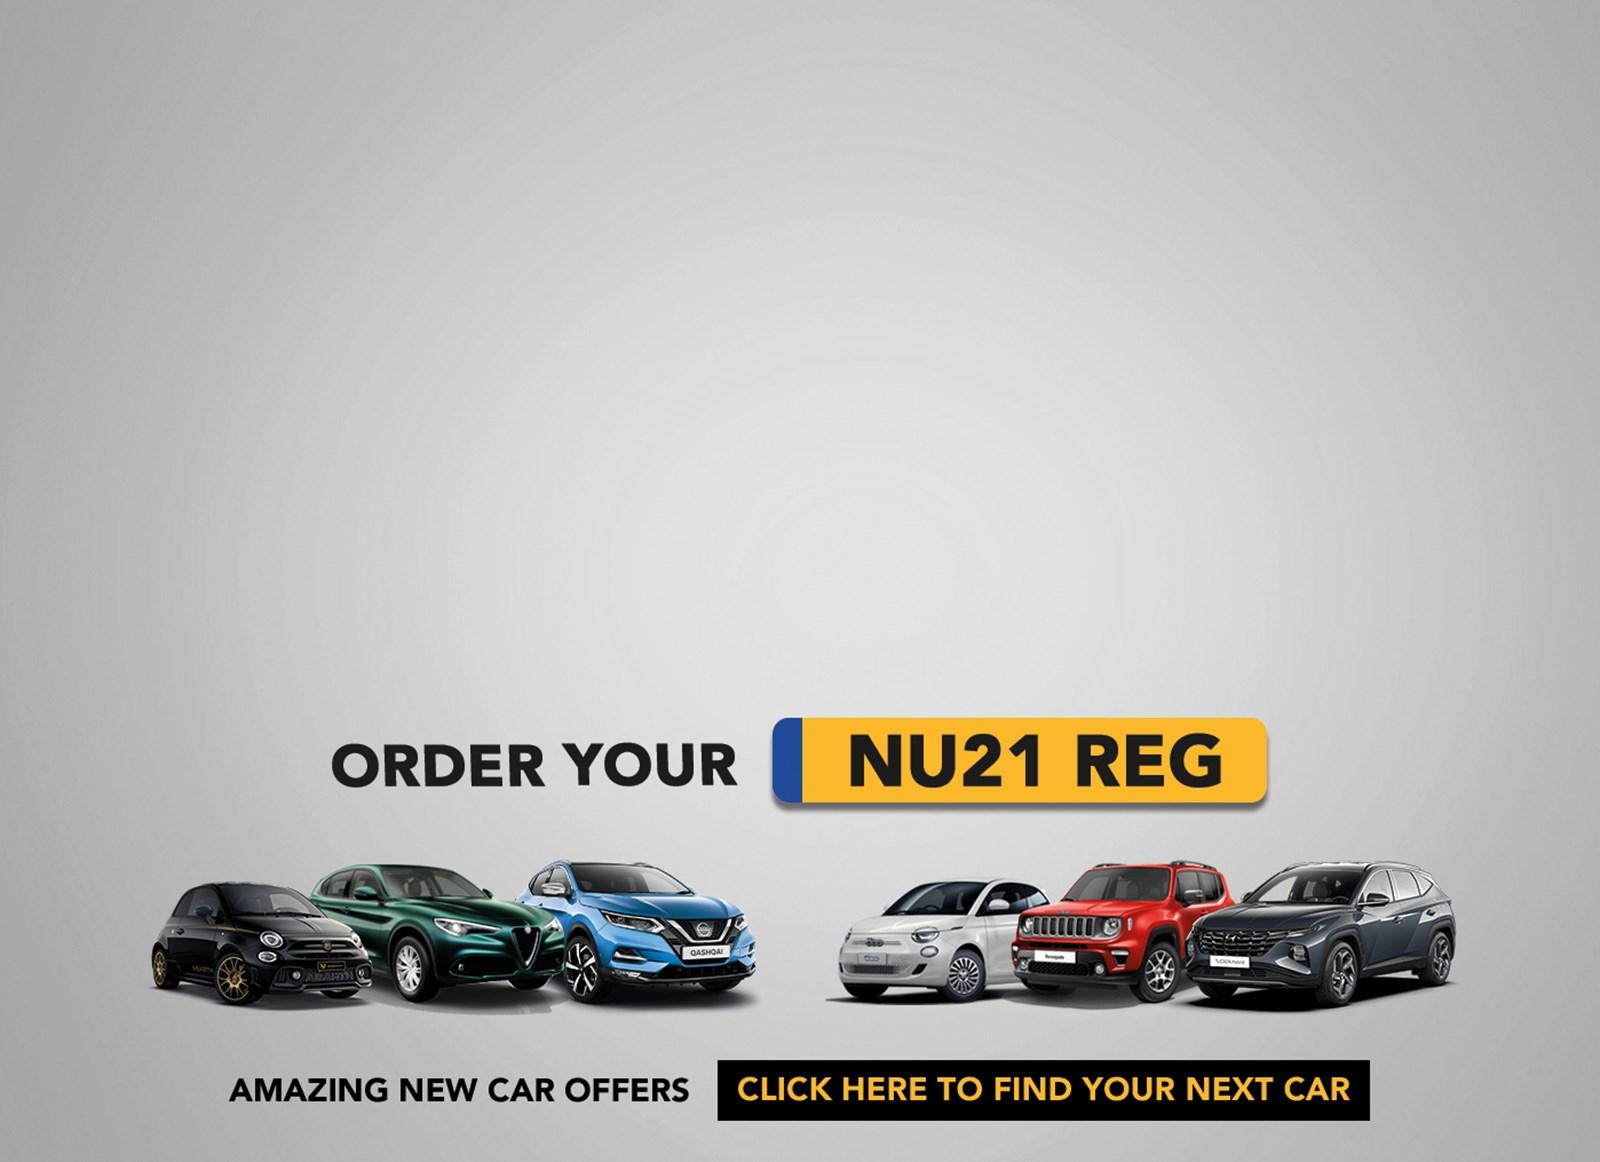 Order Your New 21 Reg